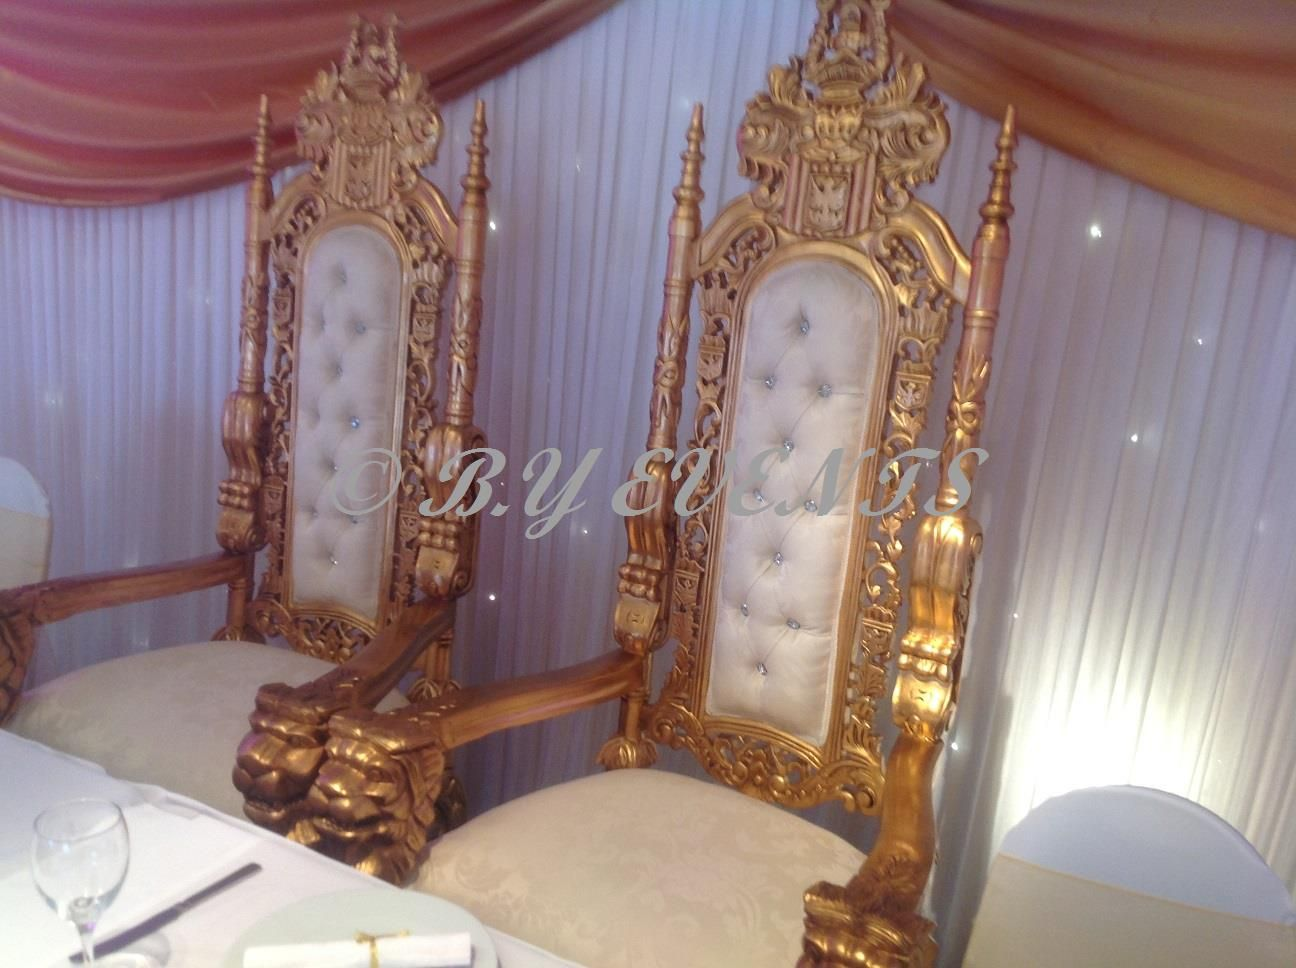 Luxury Chairs For Wedding Beautiful Bride And Groom Chairs For Rental Victoria Park